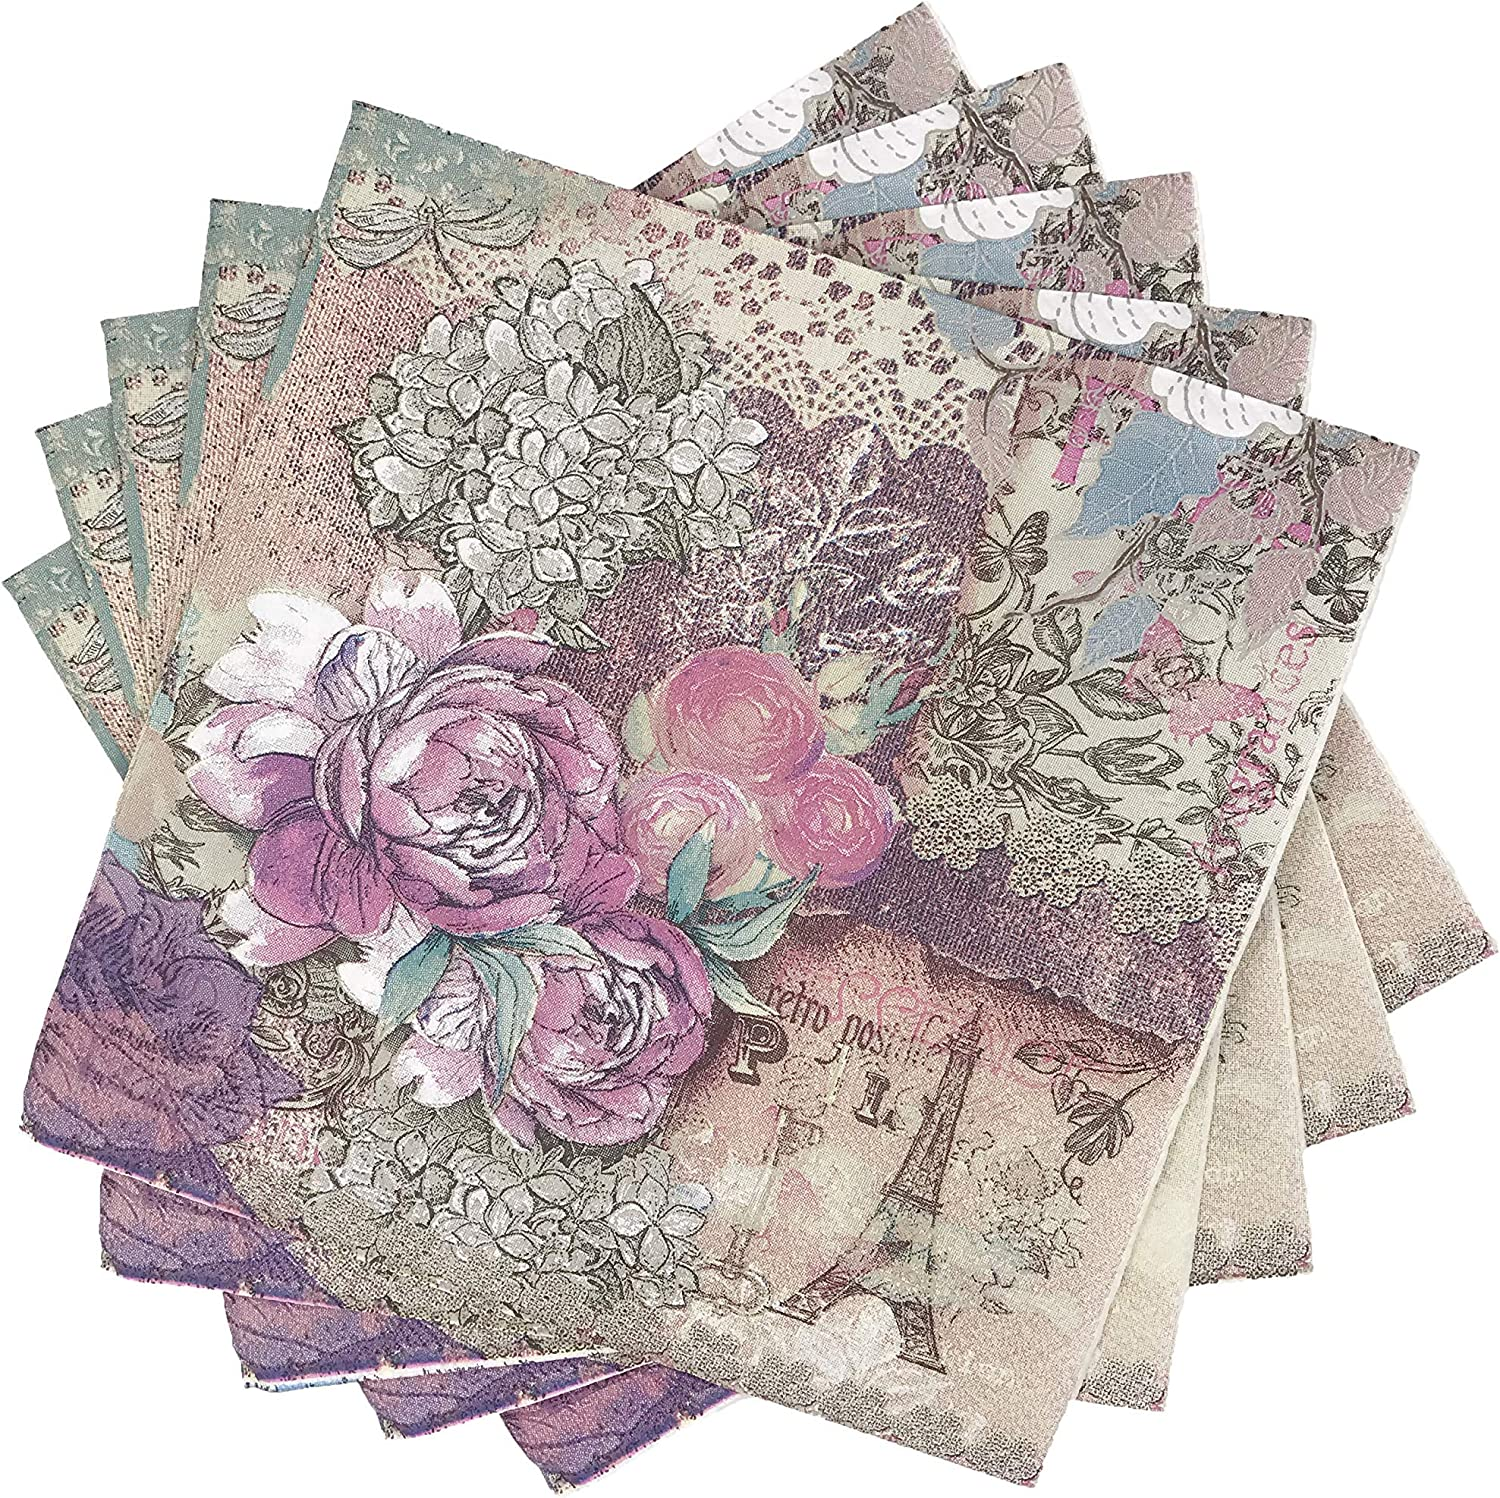 Funny wedding Wedding design 4 Single paper decoupage napkins 262